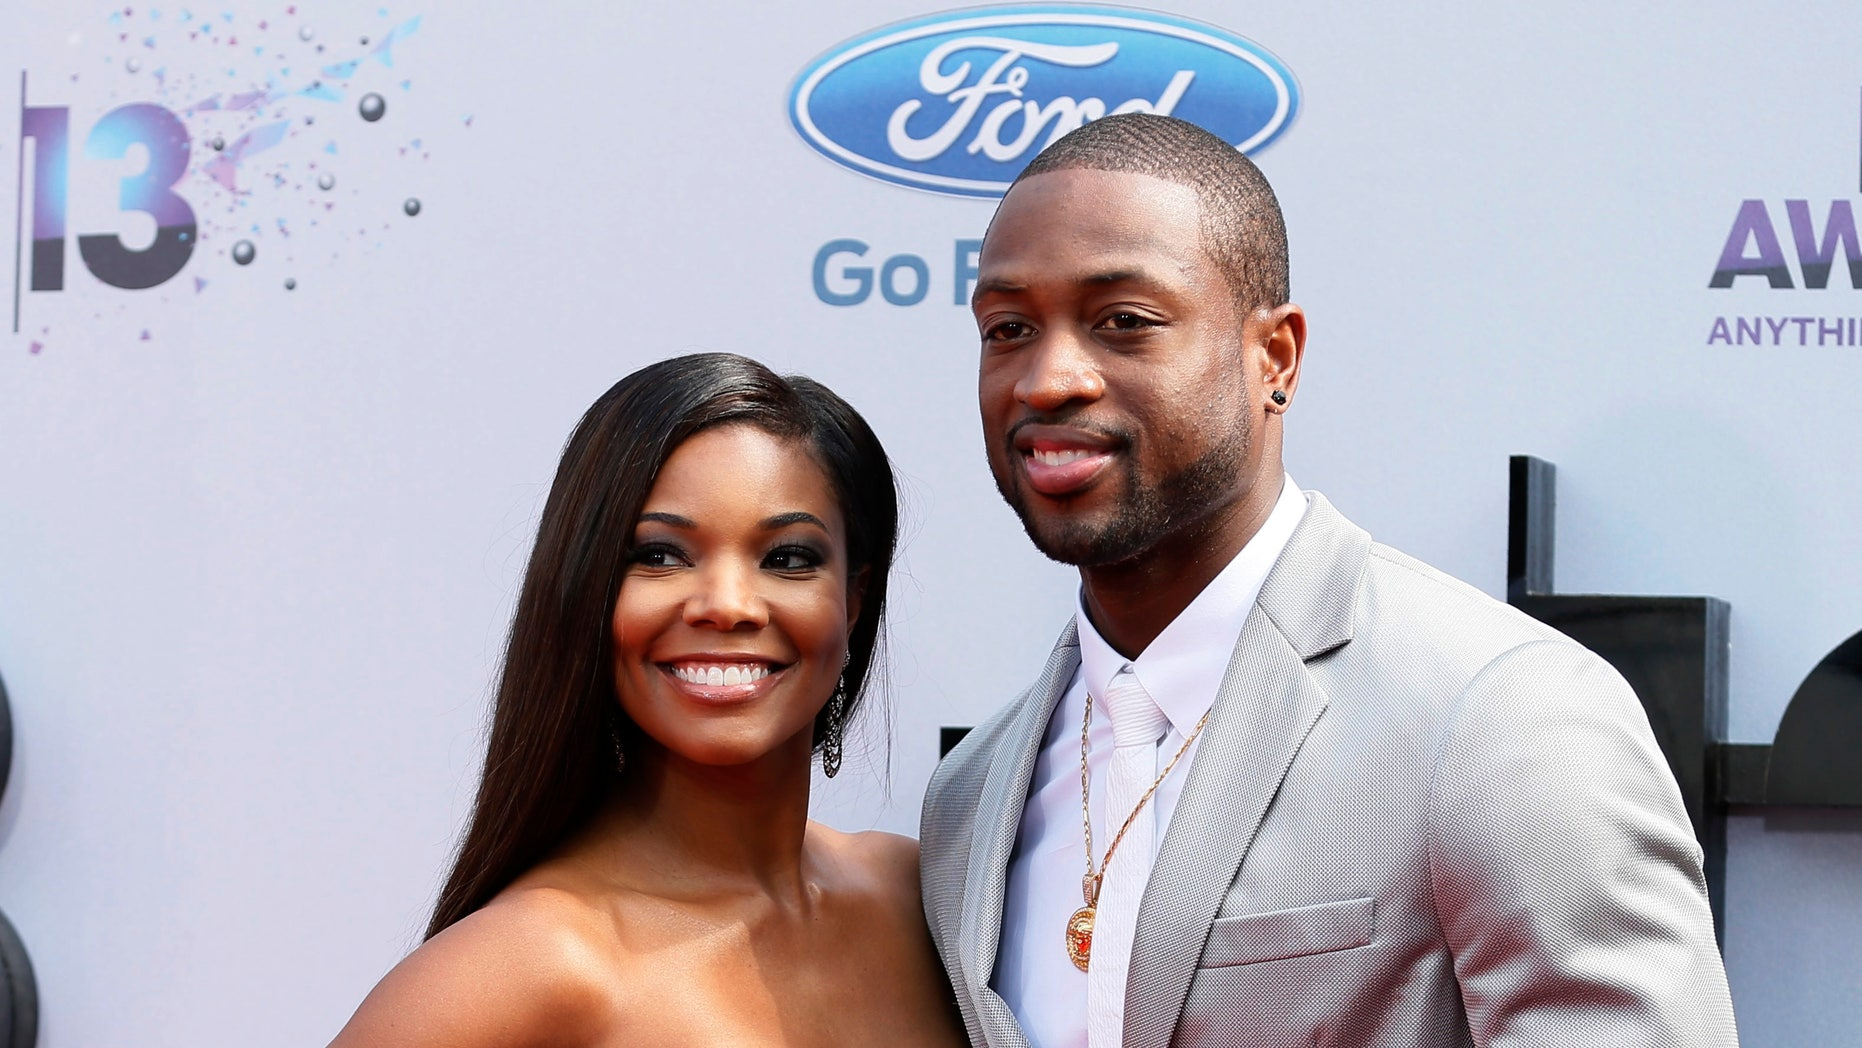 June 30, 2013. NBA star Dwyane Wade and actress Gabrielle Union arrive at the 2013 BET Awards in Los Angeles, California.